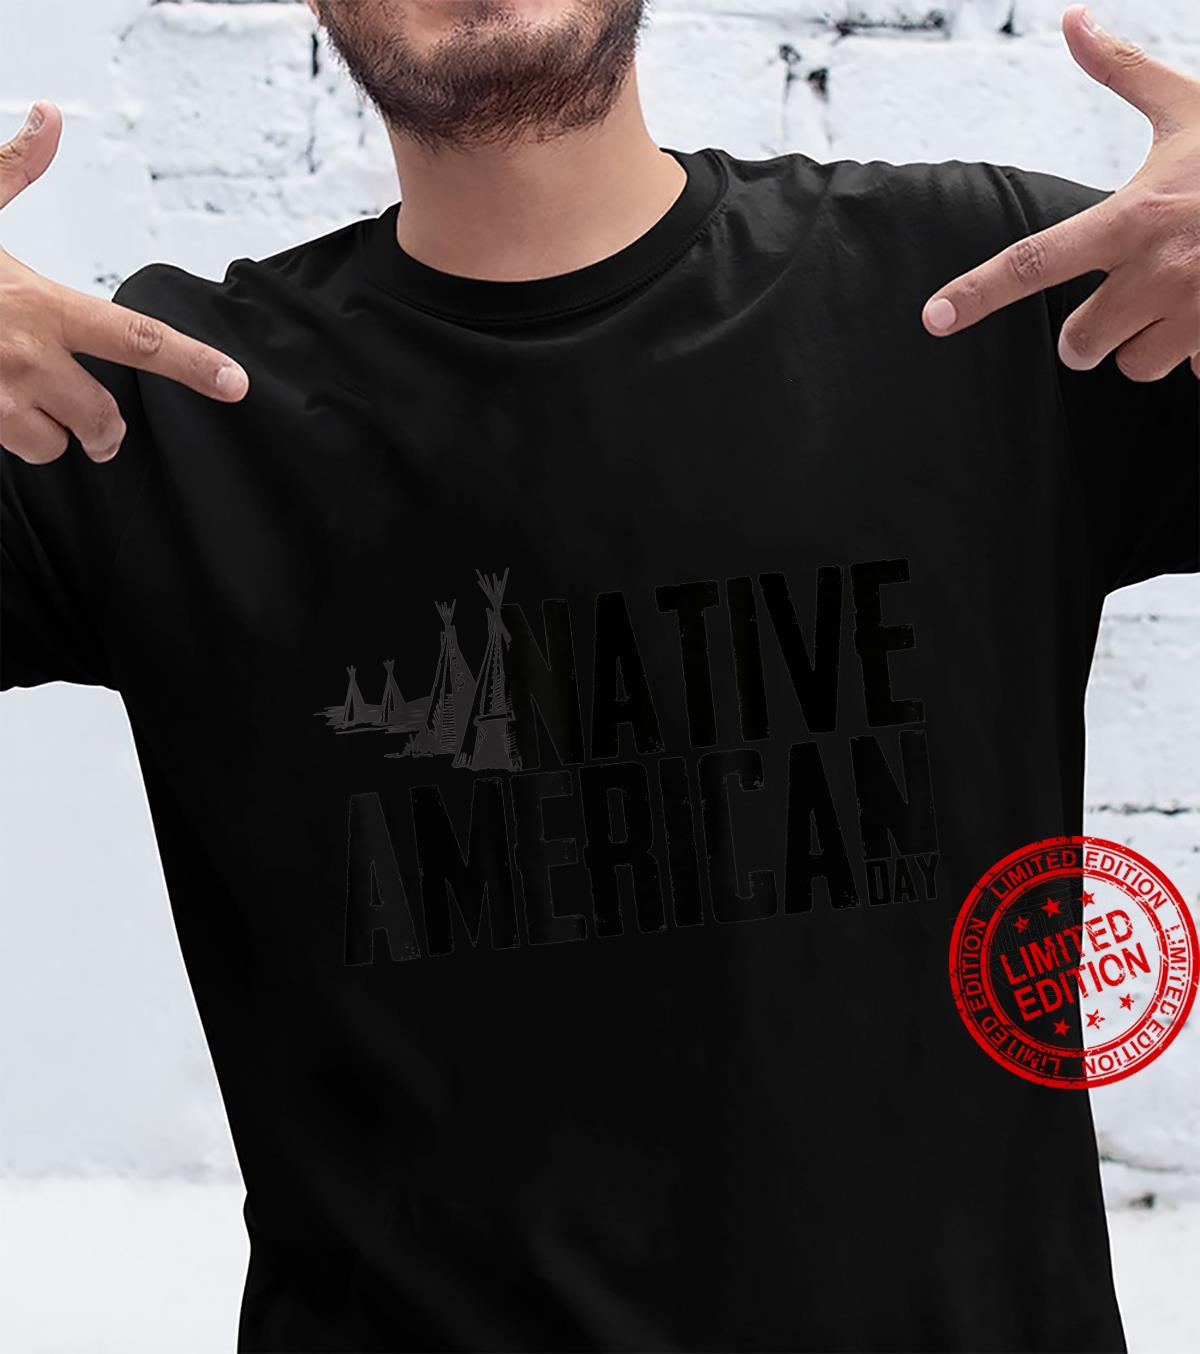 Native American Day Indigenous Peoples and Cultures Shirt